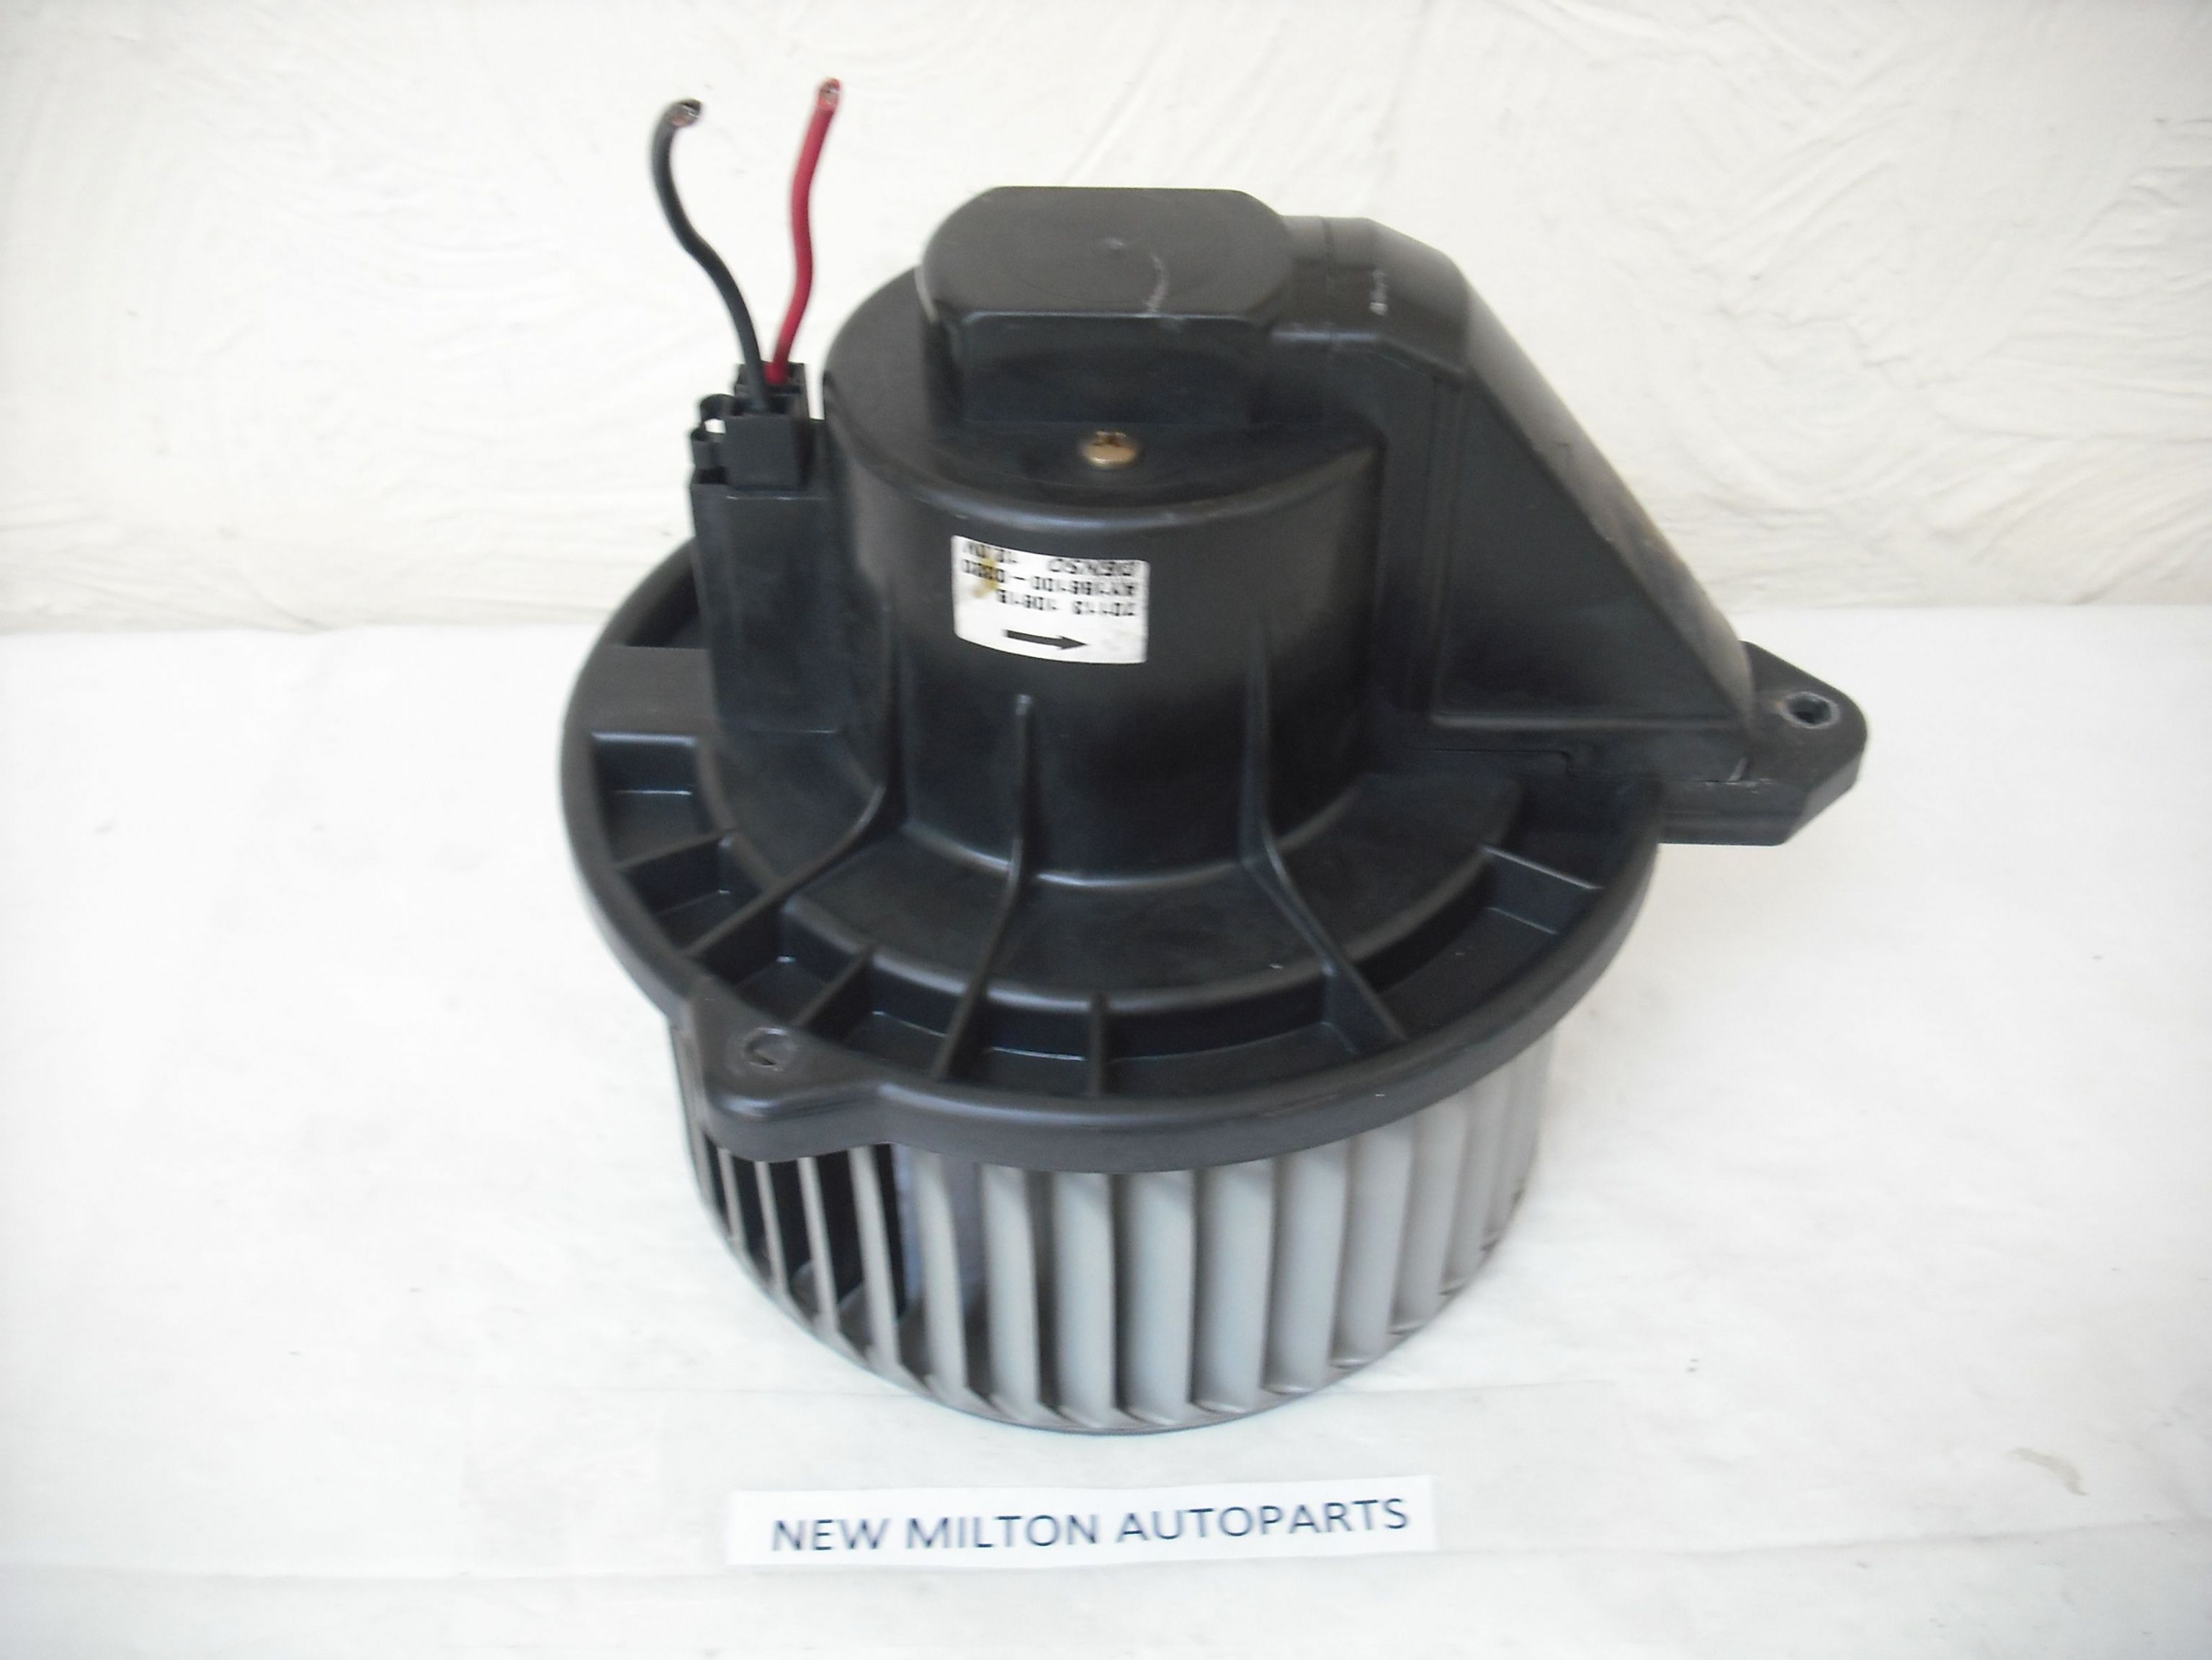 a genuine jeep grand cherokee wj heater fan blower motor 70113 1061b ay166100 0320. Black Bedroom Furniture Sets. Home Design Ideas